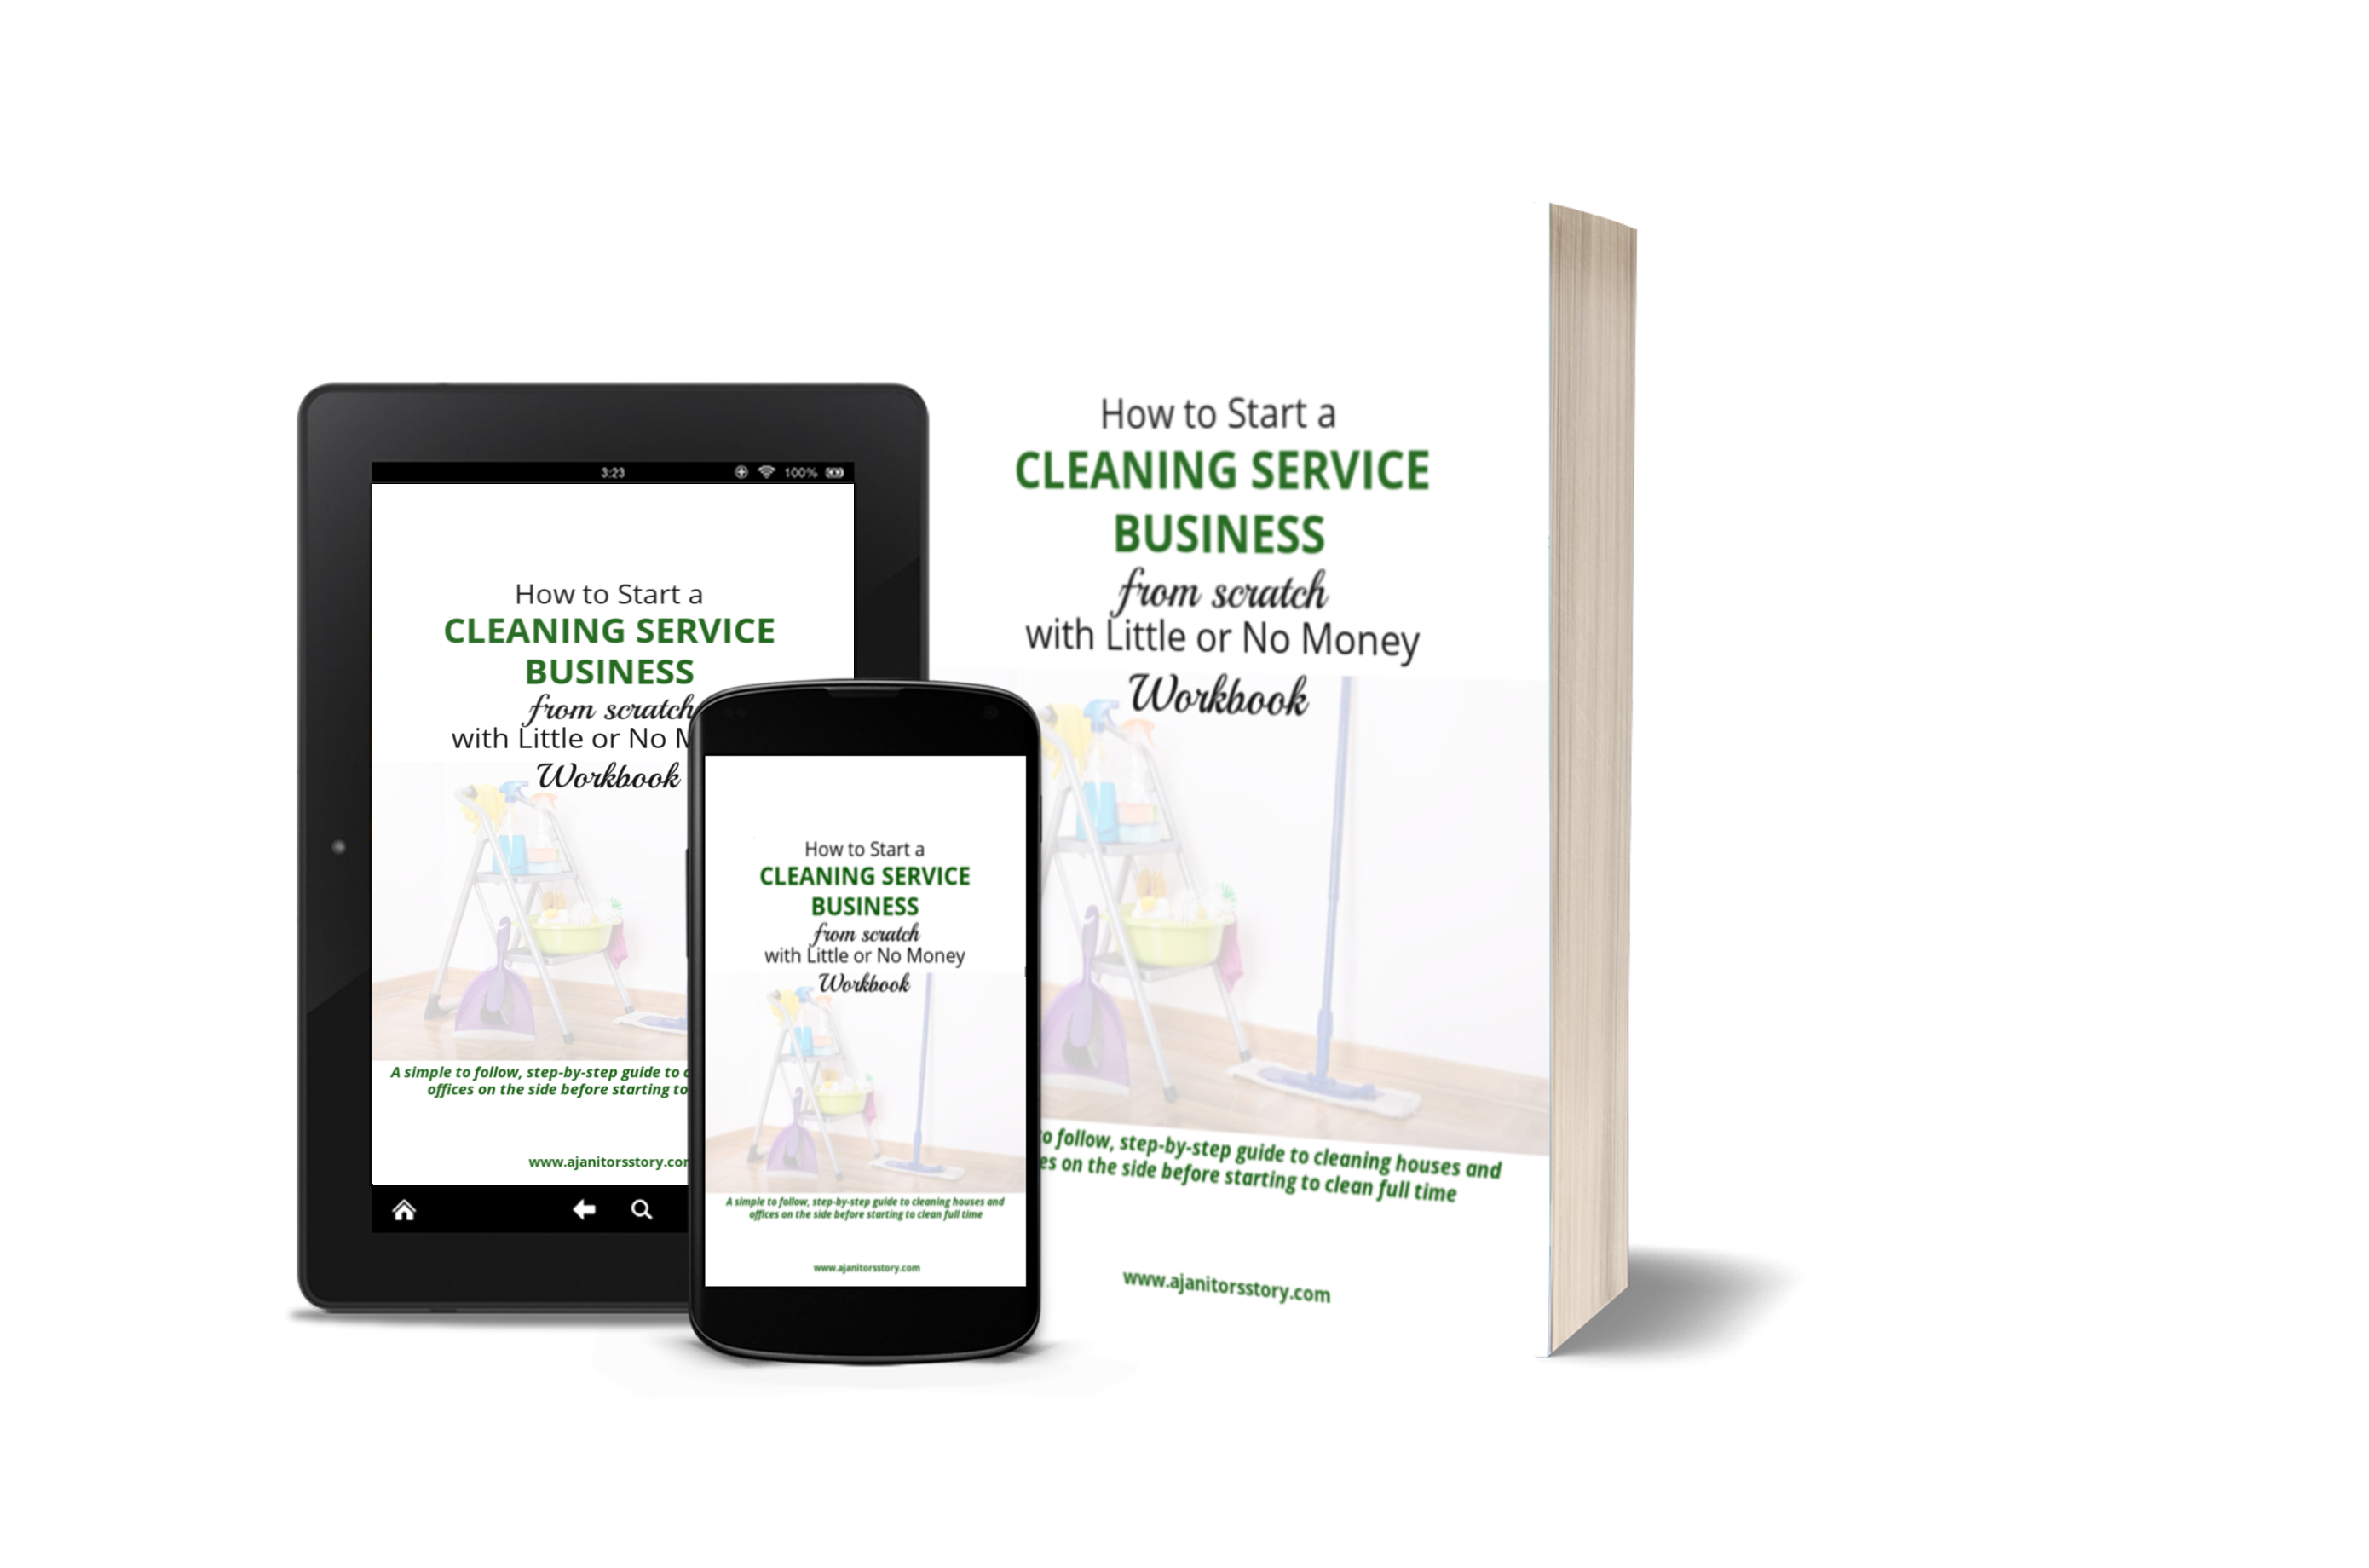 how to start a cleaning service business white ebook, tablet and smart phone picture with faded cleaning supplies on cover.